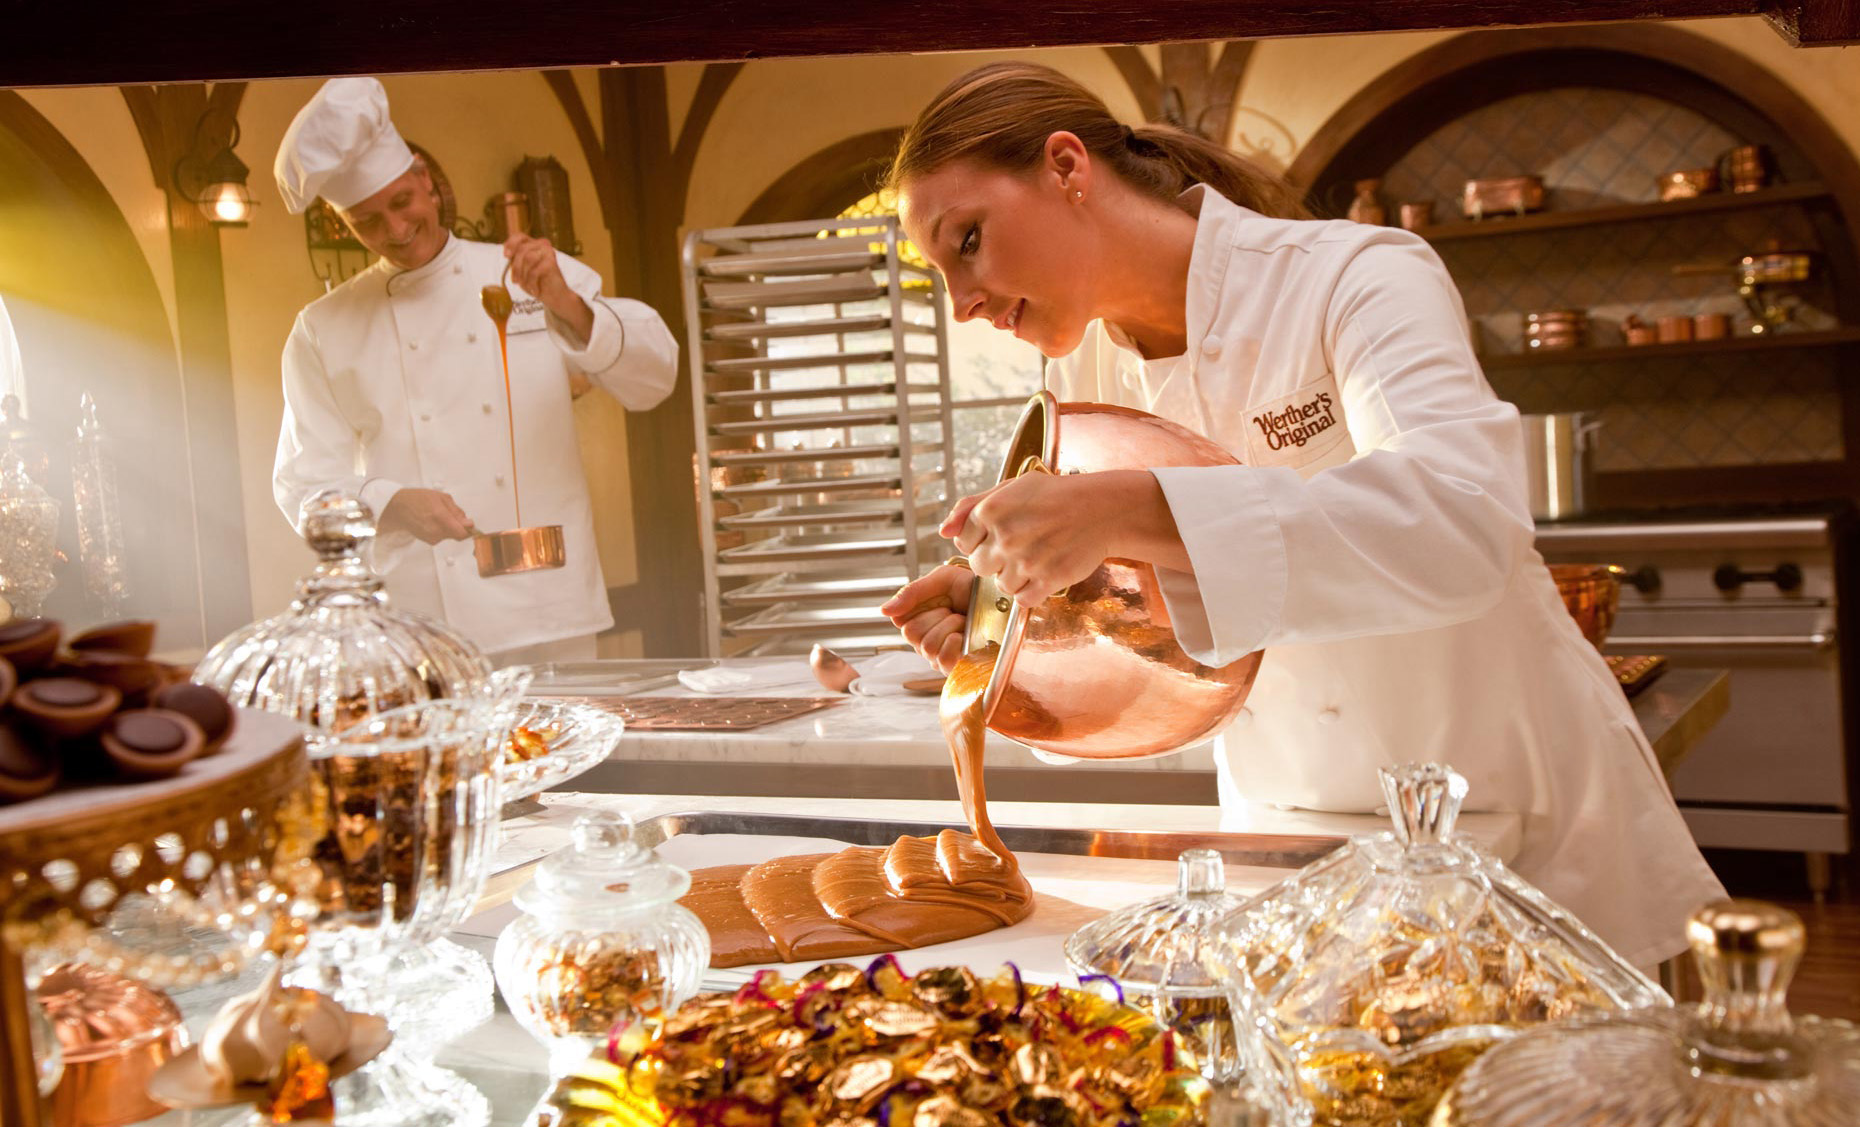 Lifestyle Photography | Chefs Making Werthers Candies